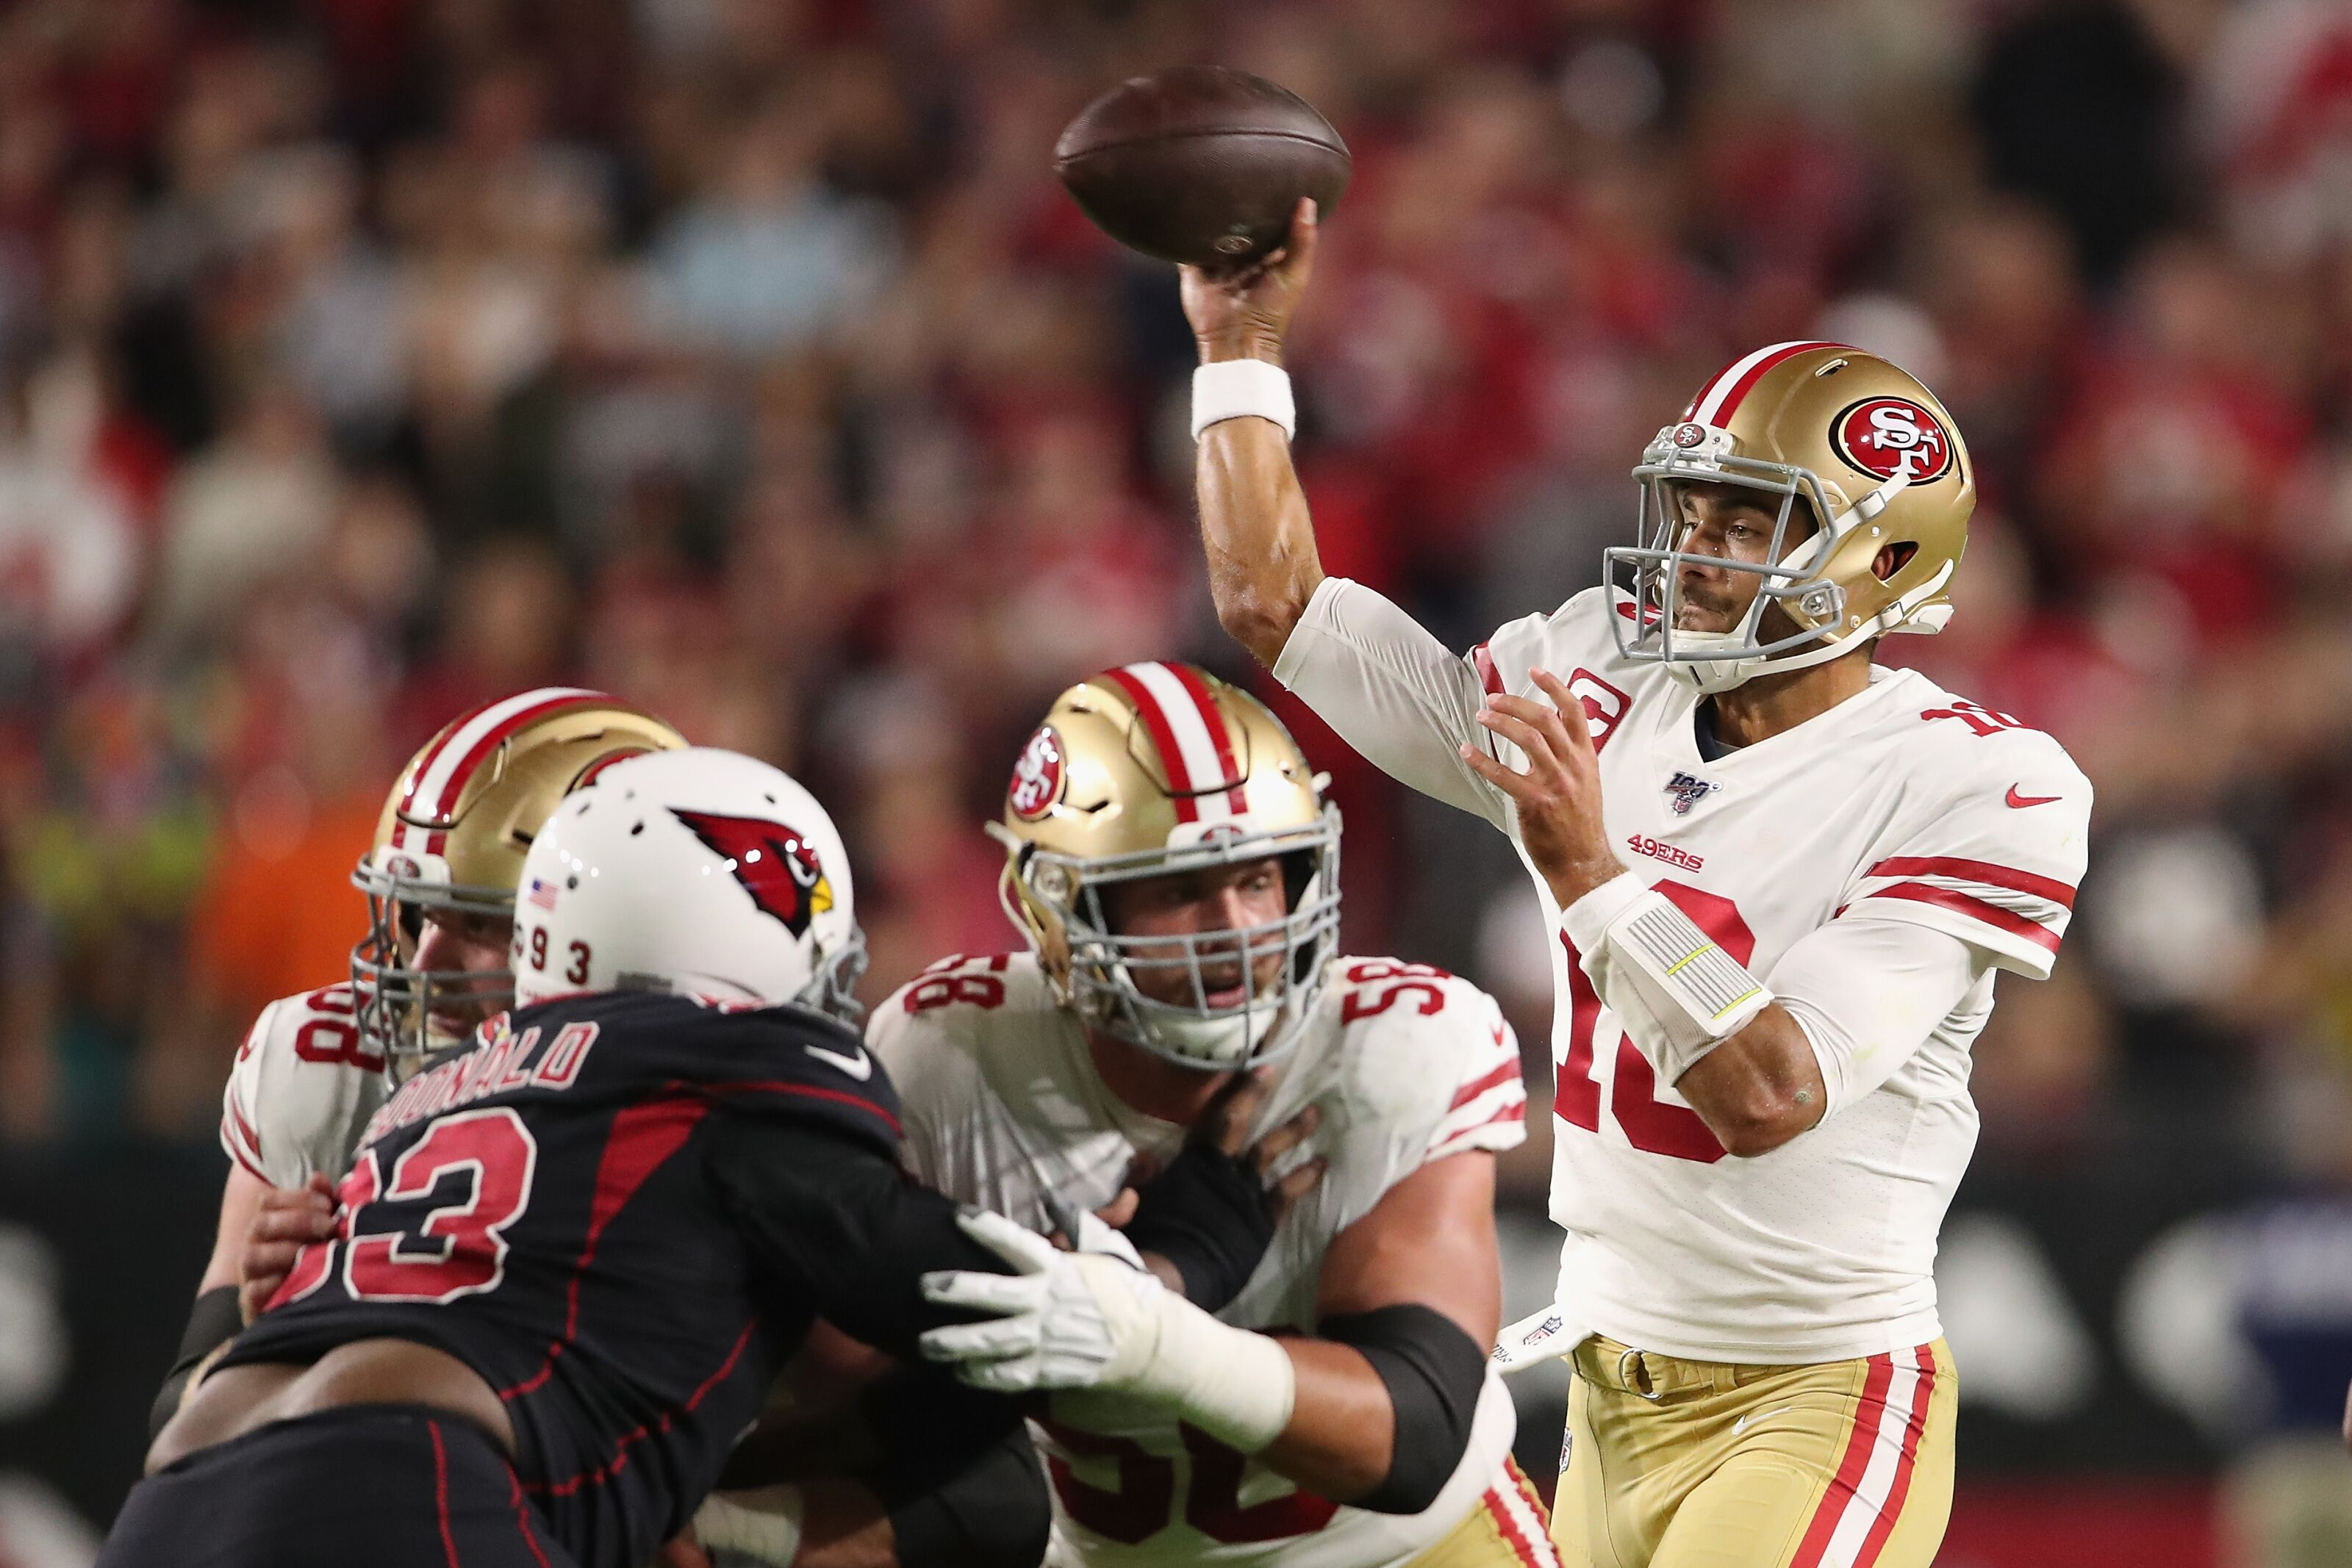 49ers vs. Cardinals: Week 11 live game thread & how to watch, stream online